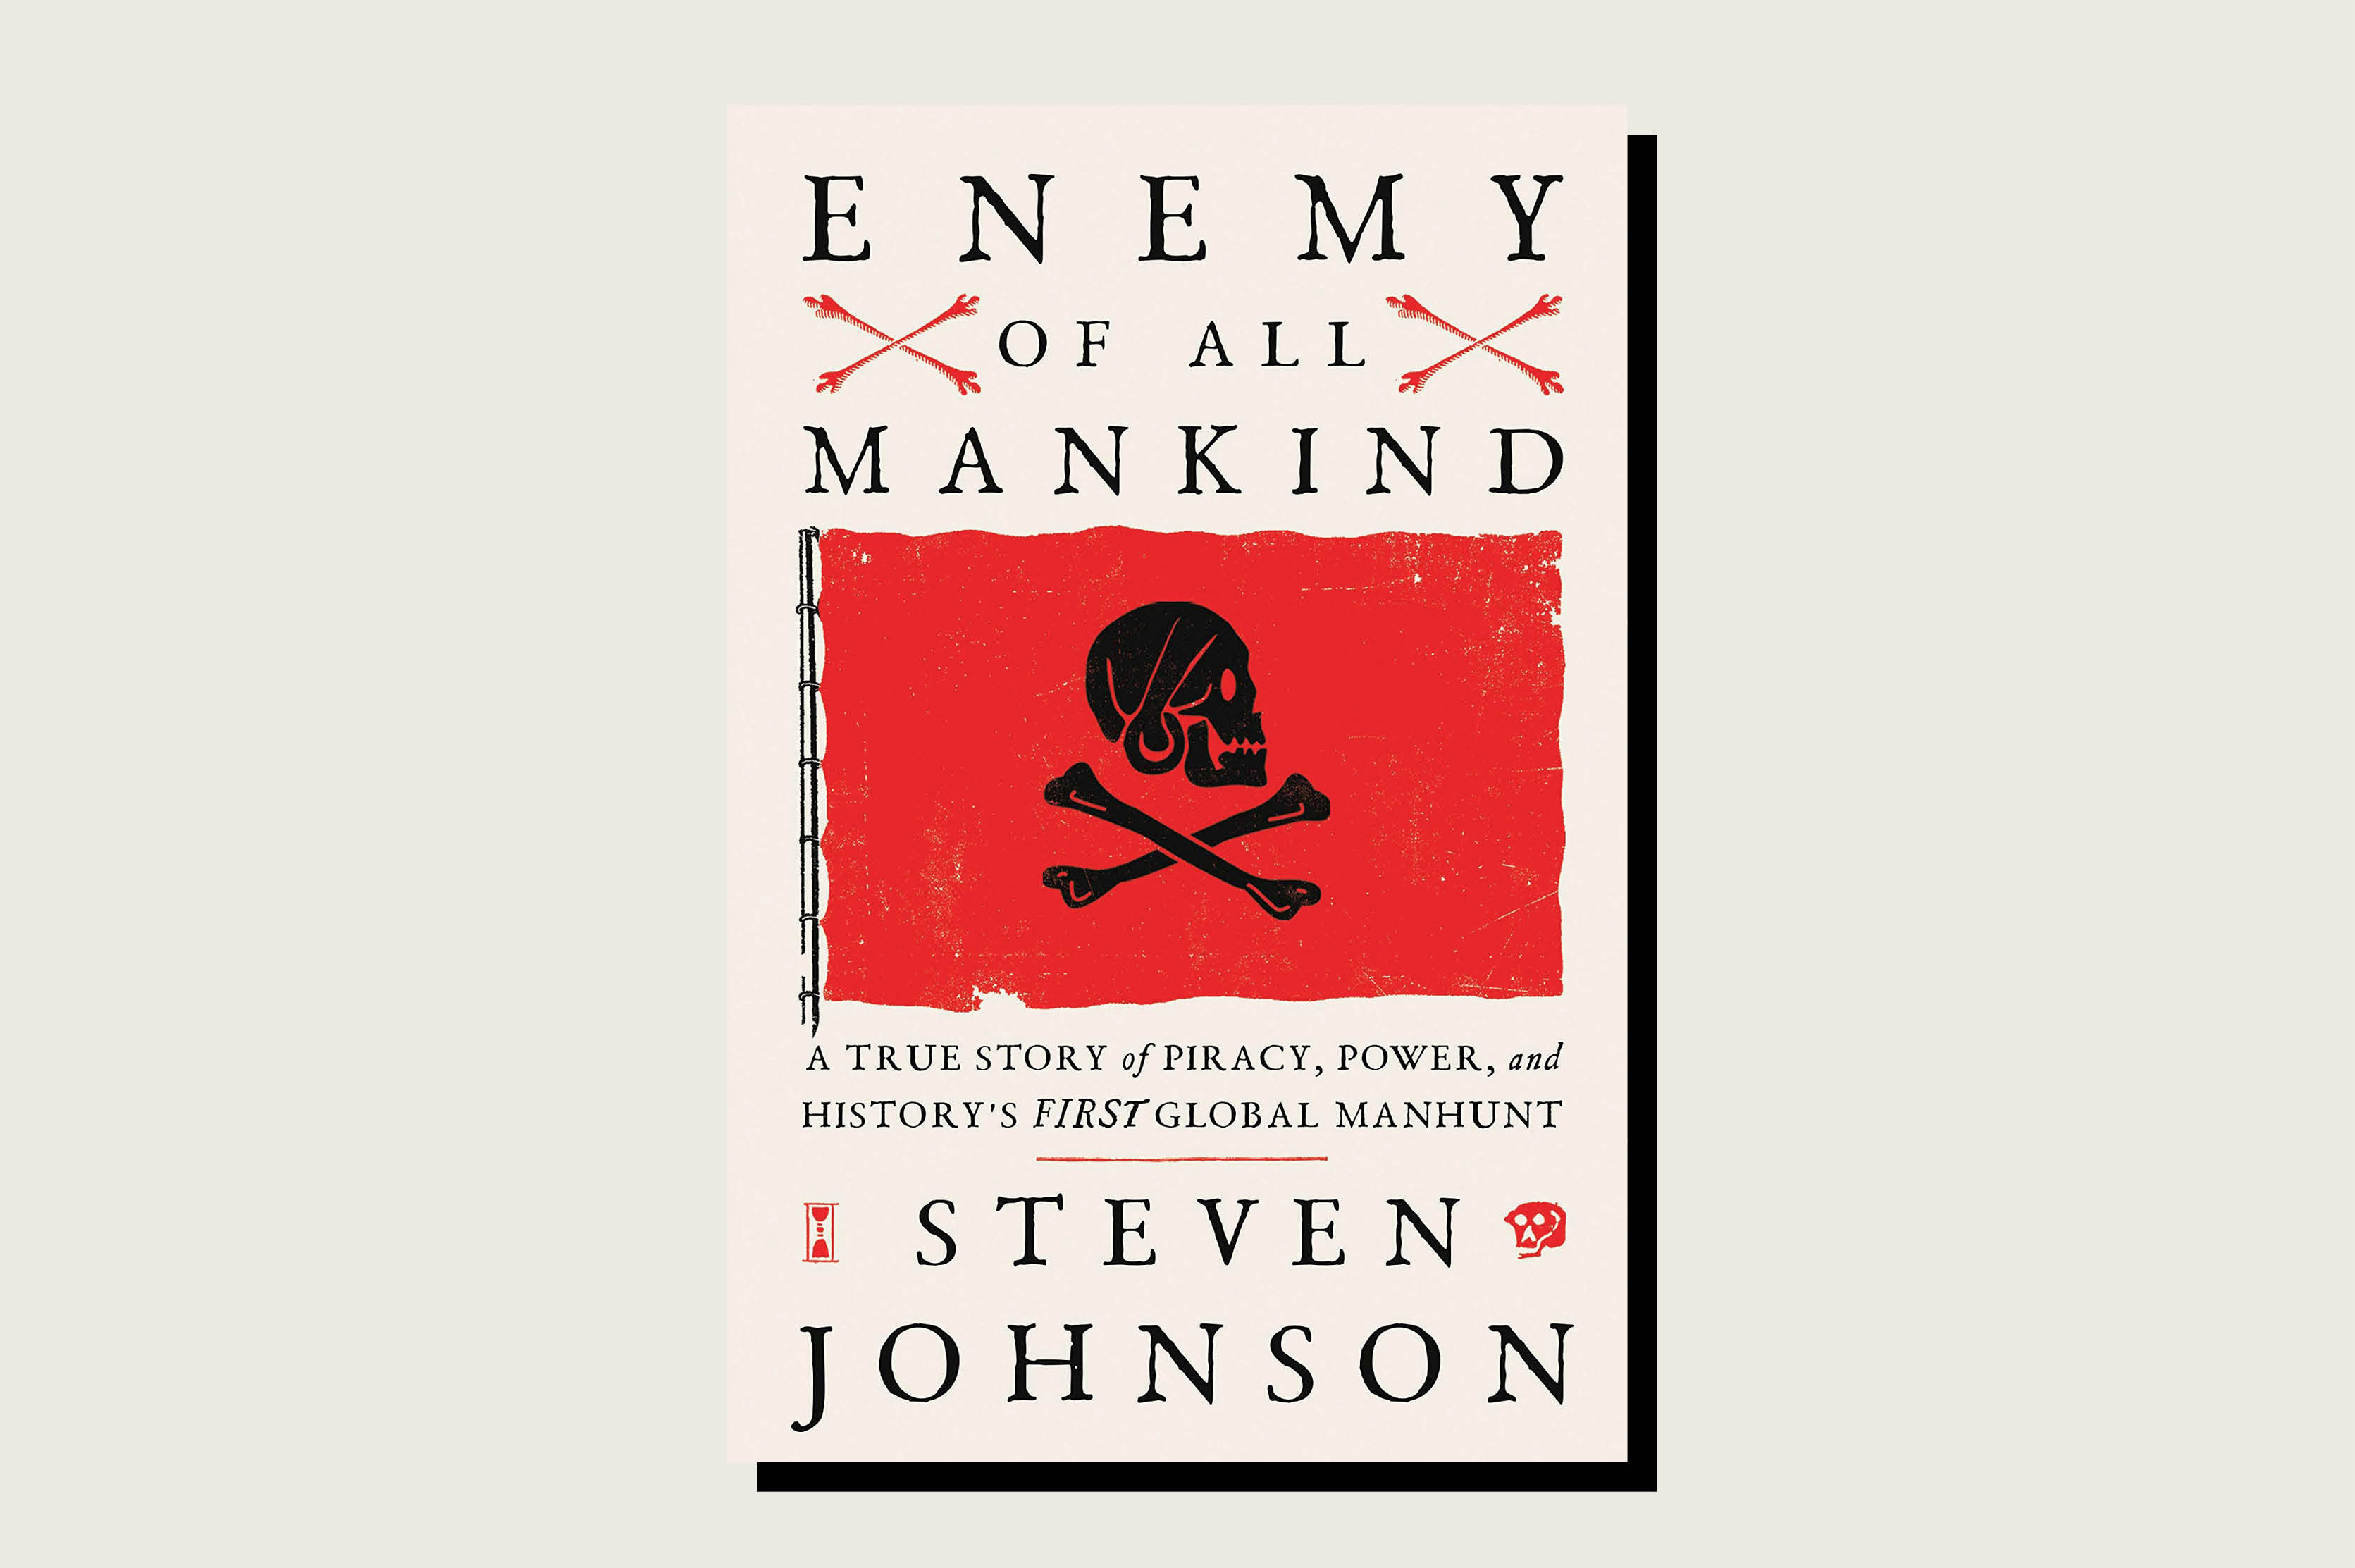 Enemy of All Mankind: A True Story of Piracy, Power, and History's First Global Manhunt, Steven Johnson, Riverhead Books, 304 pp., , May 2020